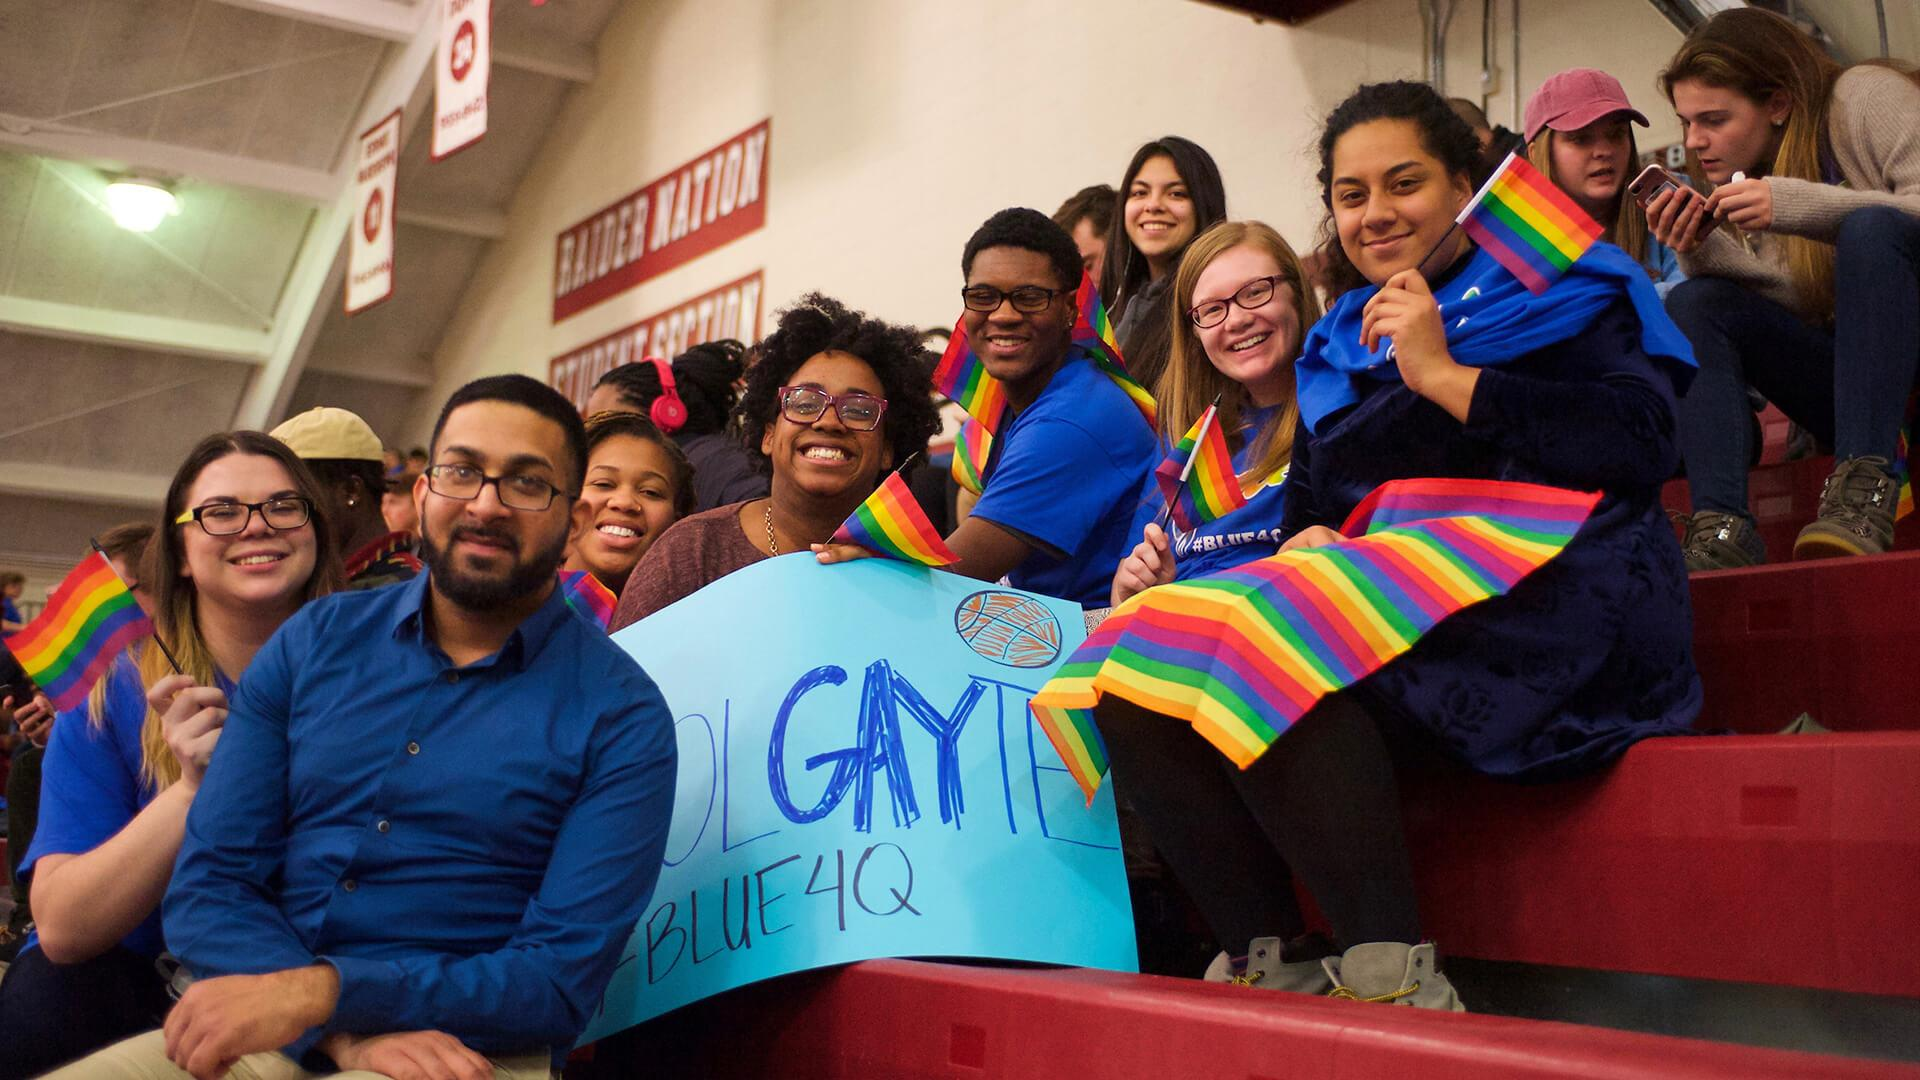 Colgate takes on Boston University in men's basketball during the LGBTQ Awareness Game